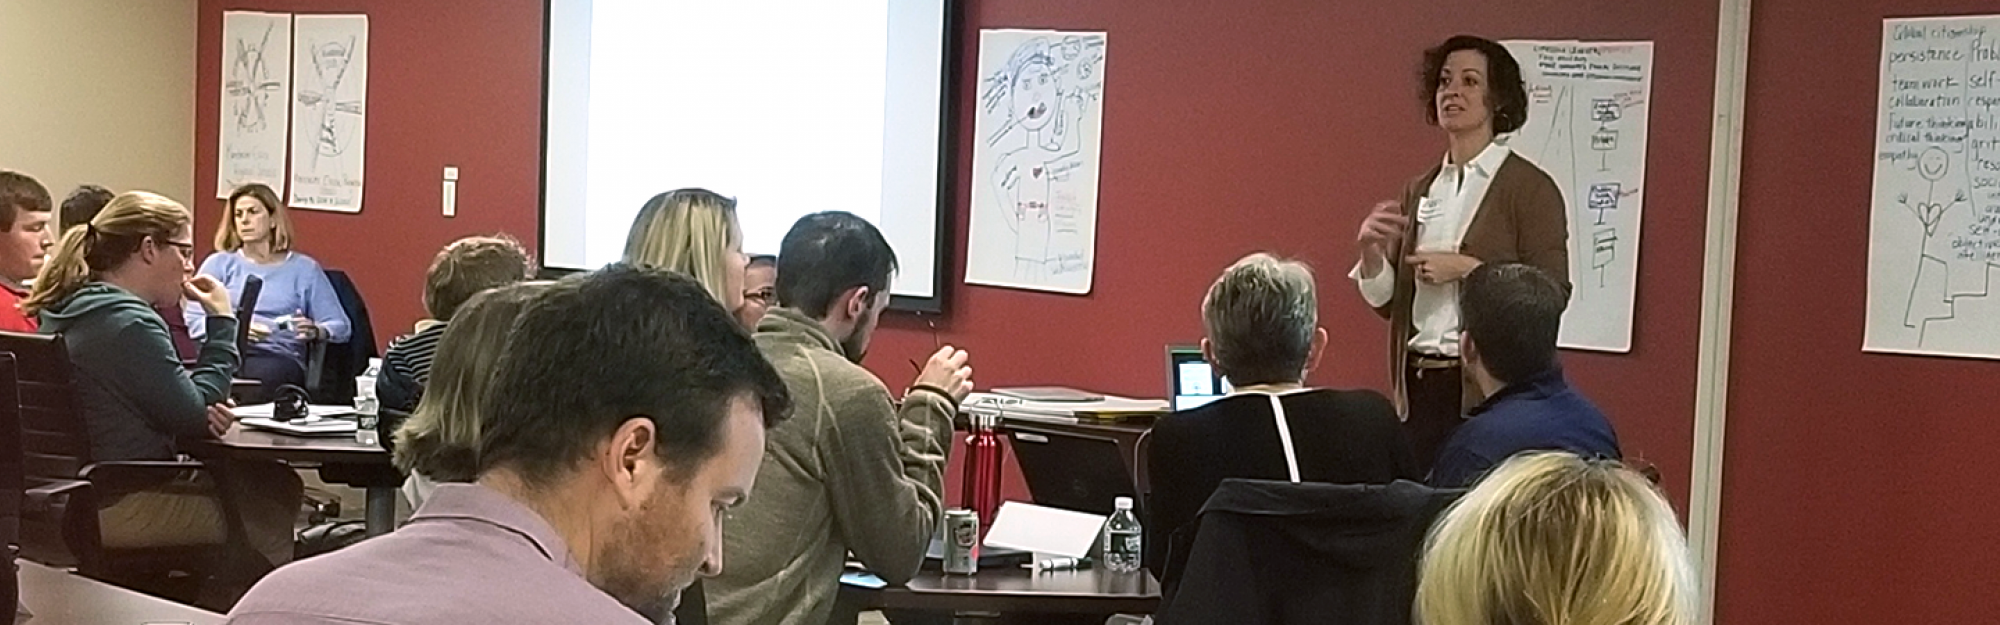 Image of Vision of the Graduate Workshop at NEASC